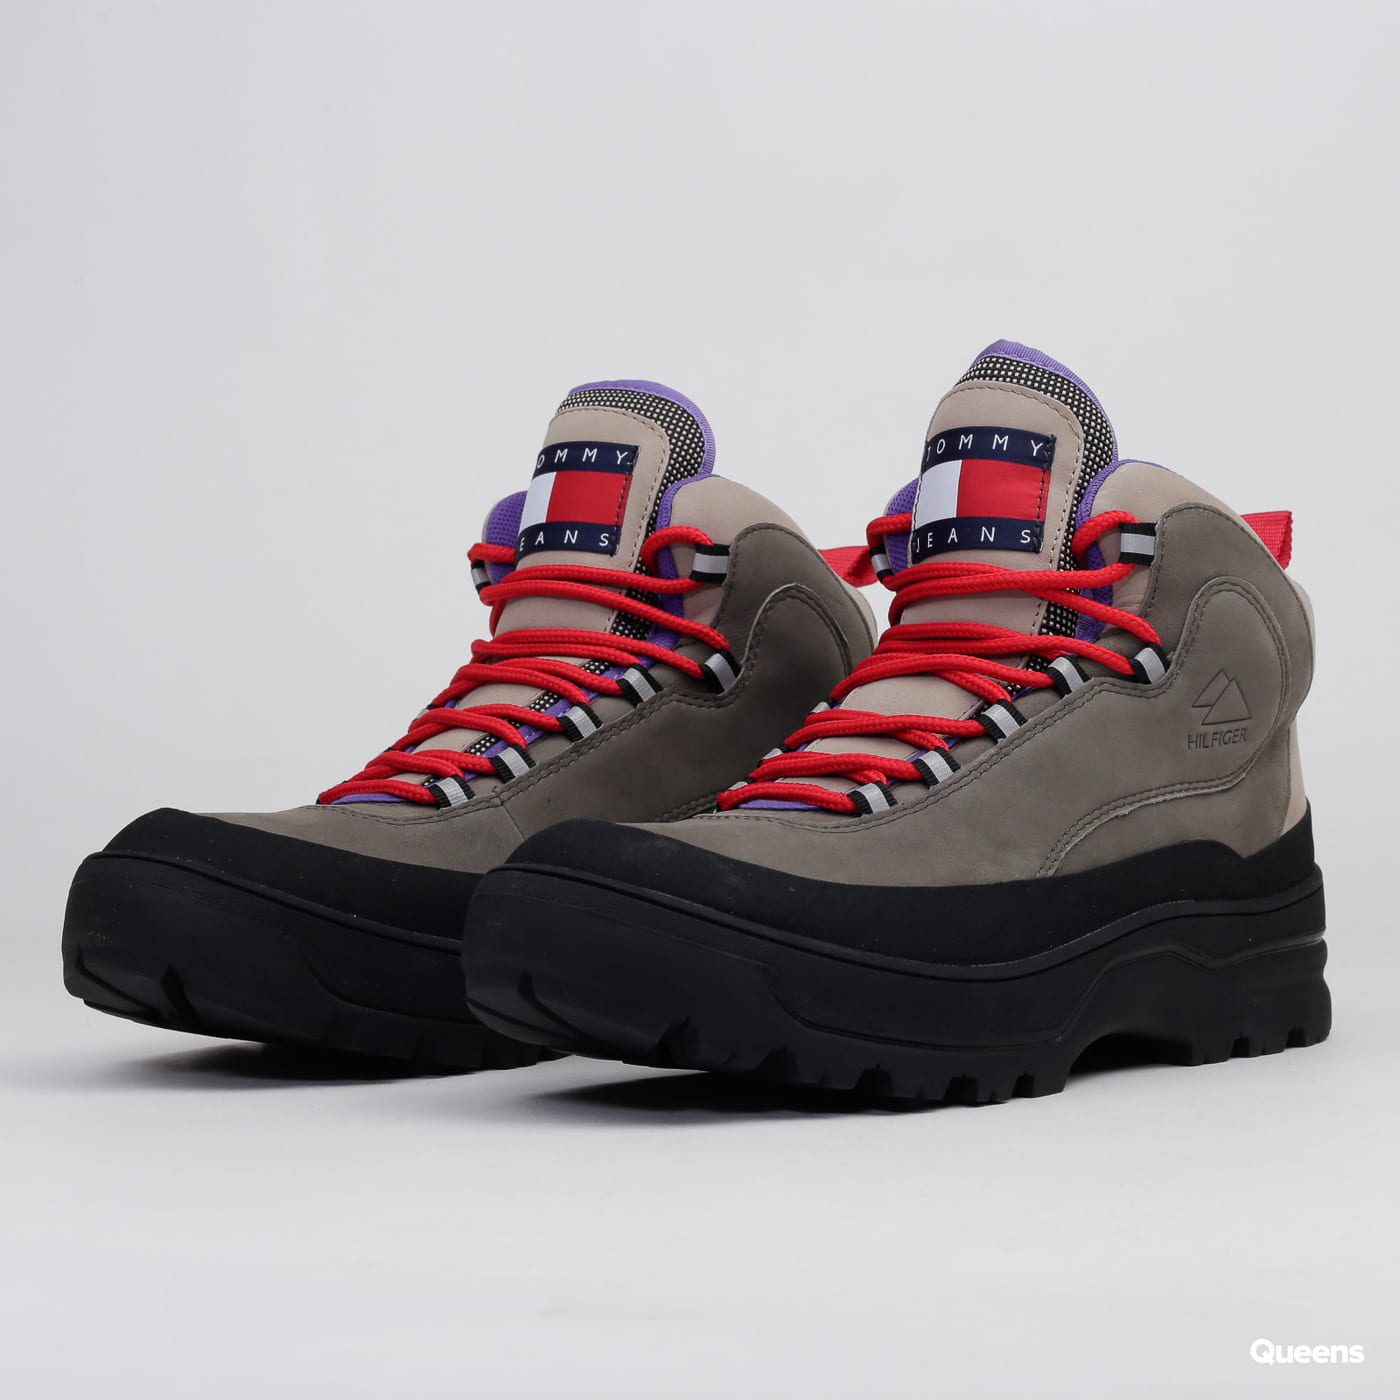 TOMMY JEANS Hilfiger Expedition dusty olive